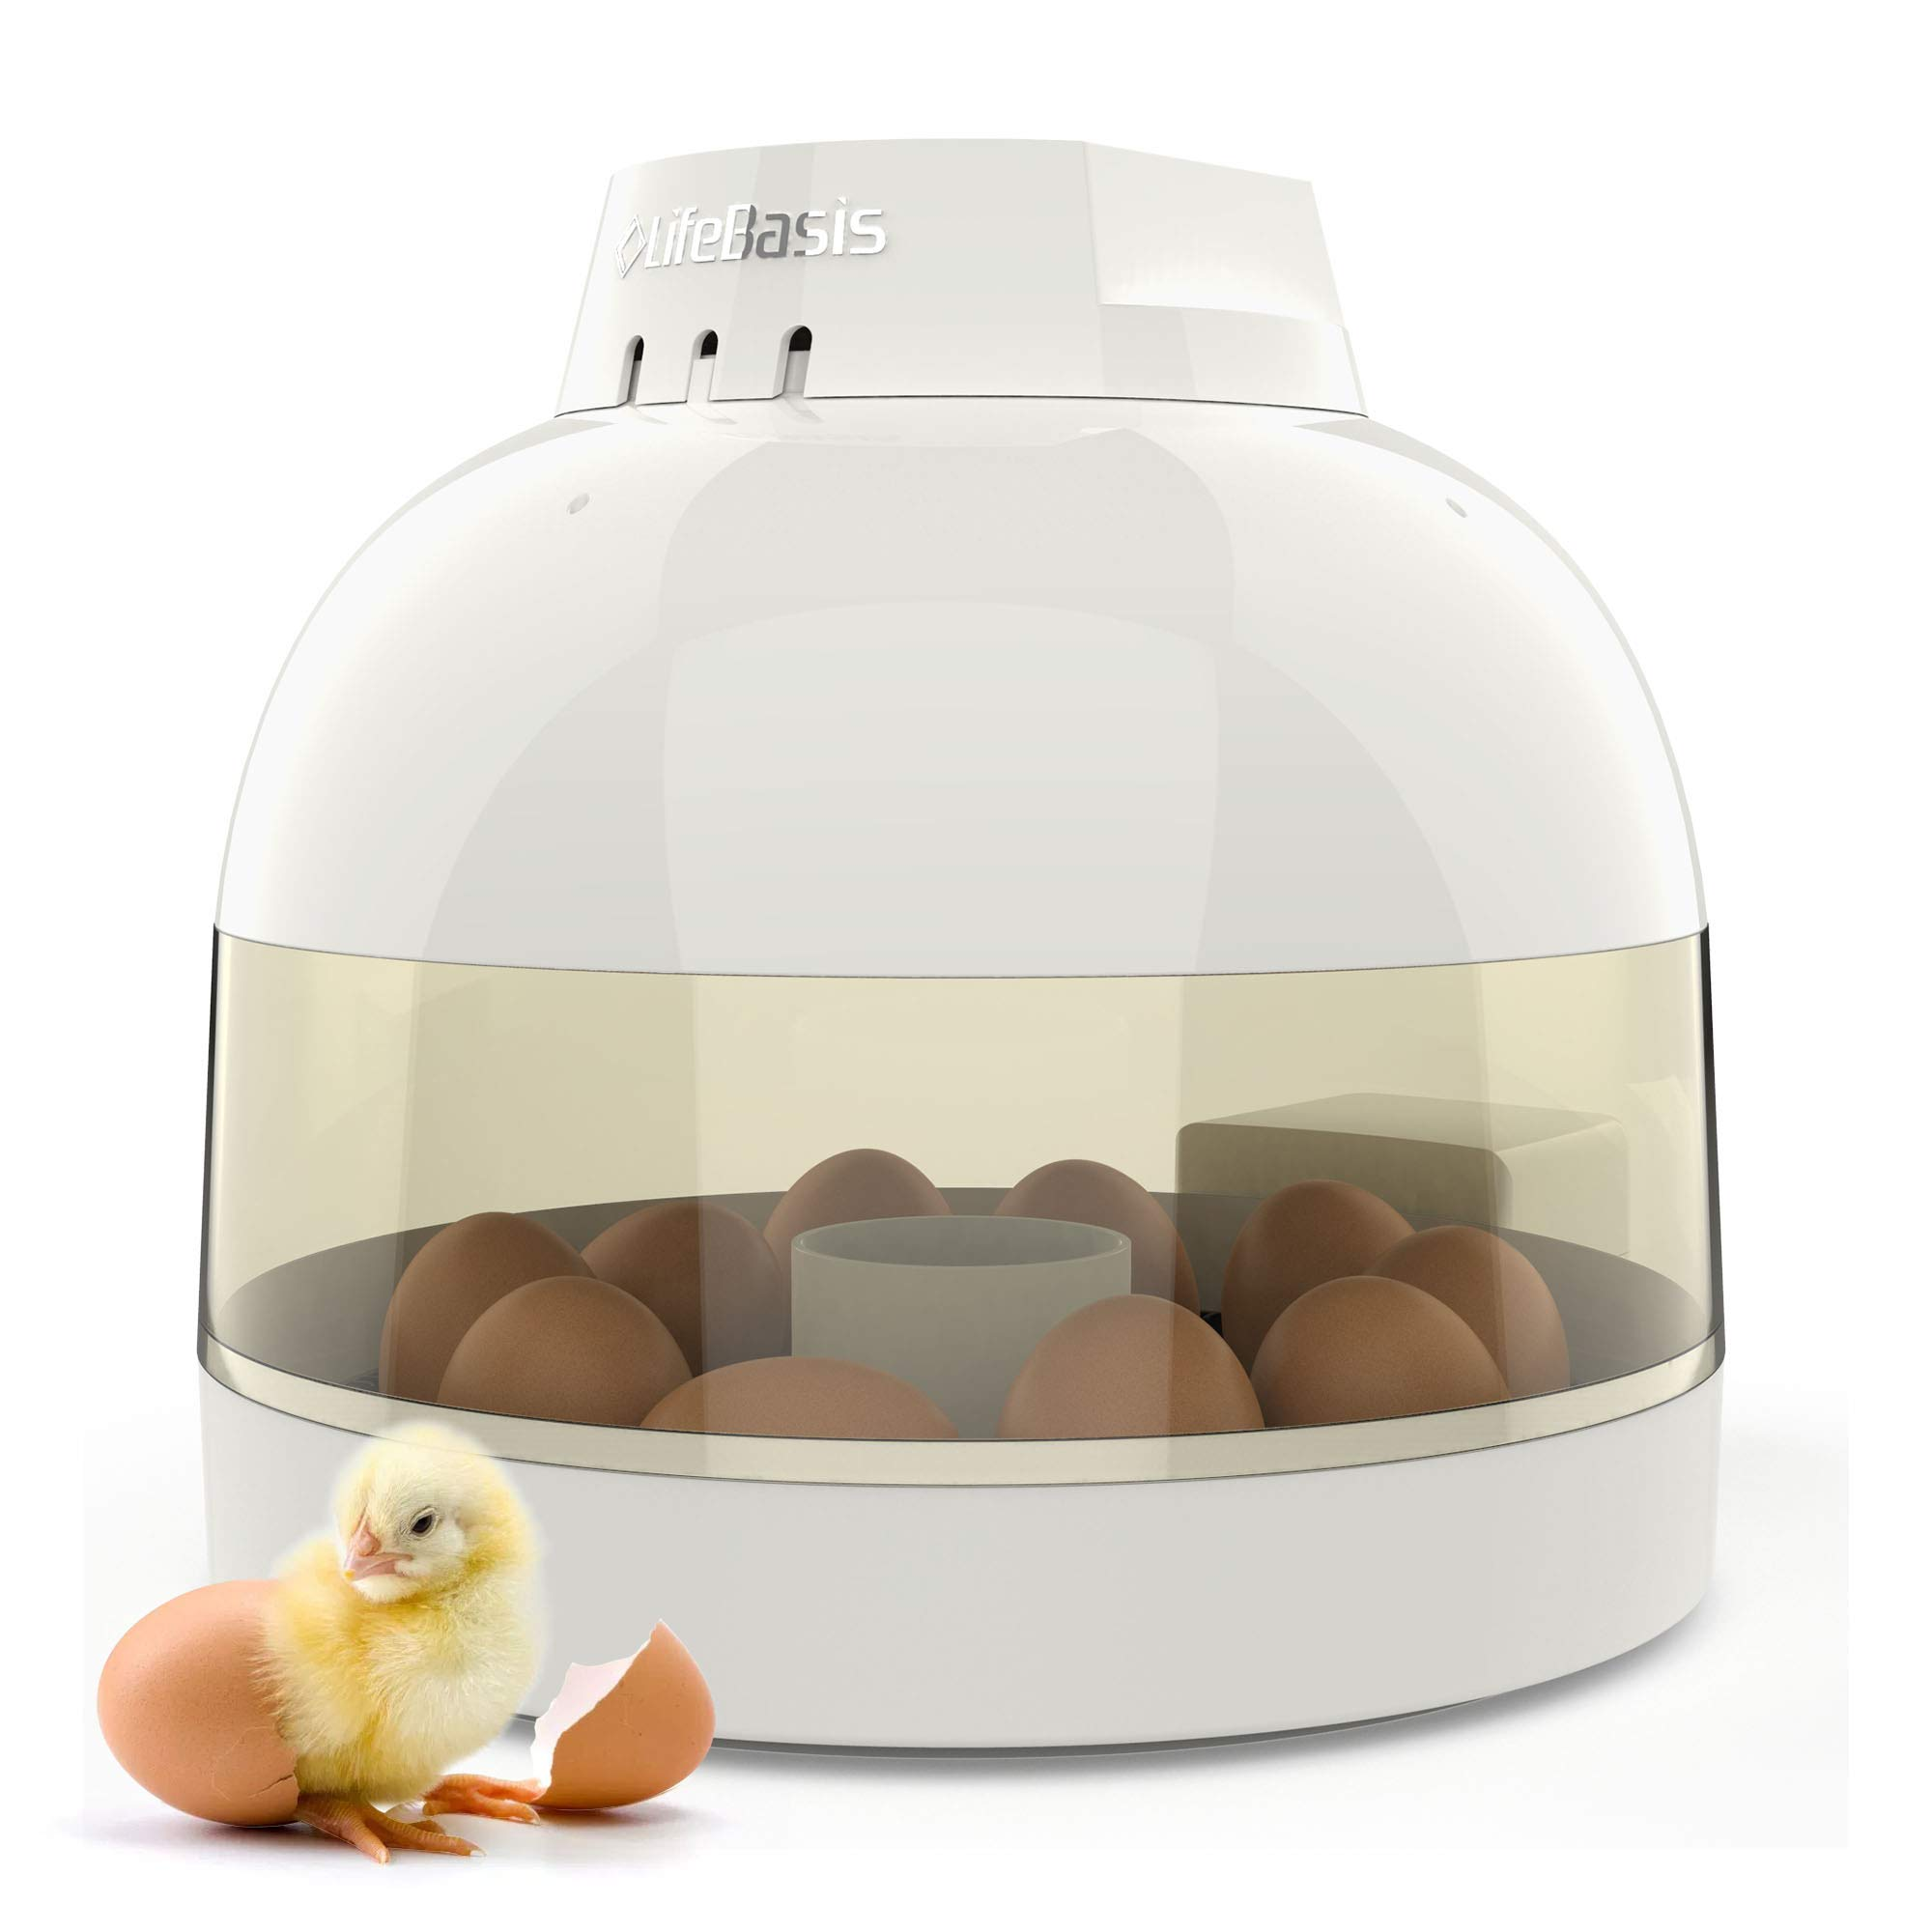 Life Basis Egg Incubator Fully Automatic Egg Turning Auto Temperature Keep Easy to Observe 10 Eggs Small Poultry Hatcher for Chickens Ducks Goose Birds by Life Basis